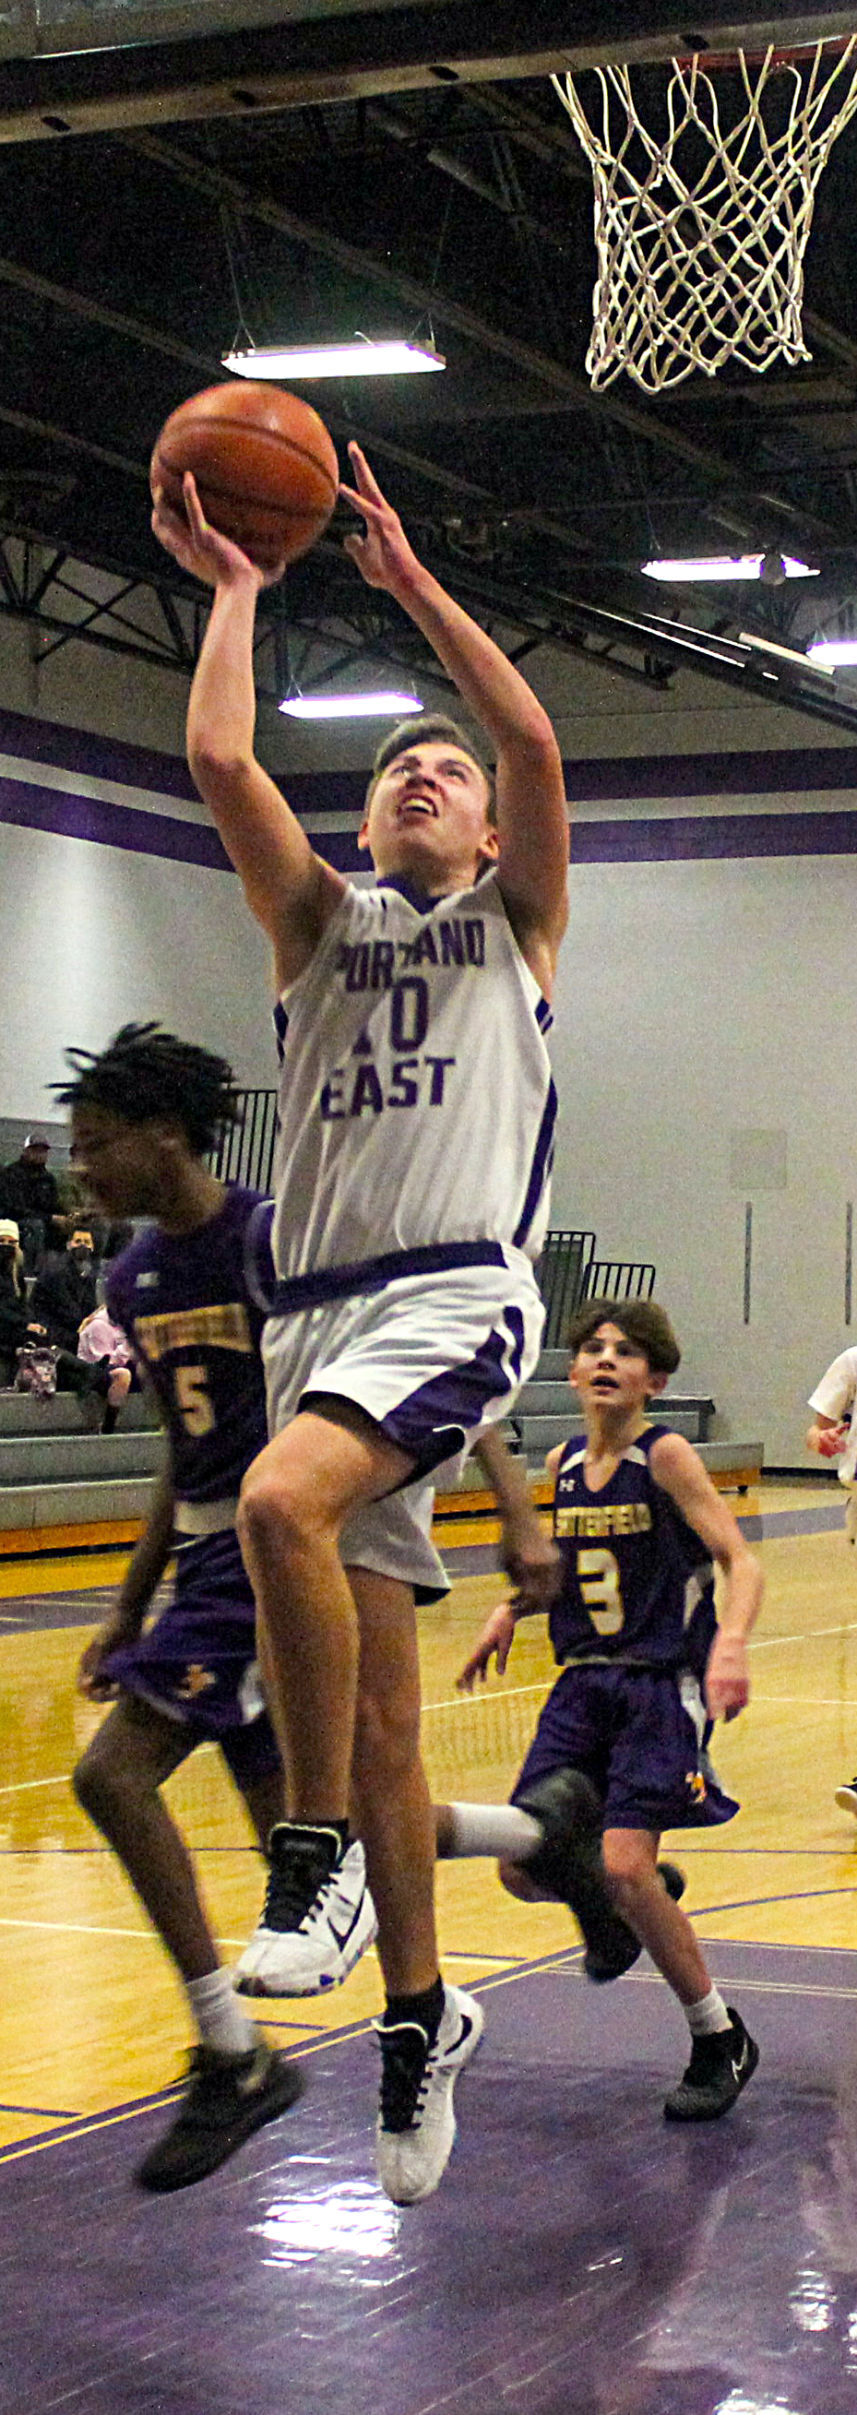 PEMS HOOPS ROUND-UP PHOTO 1